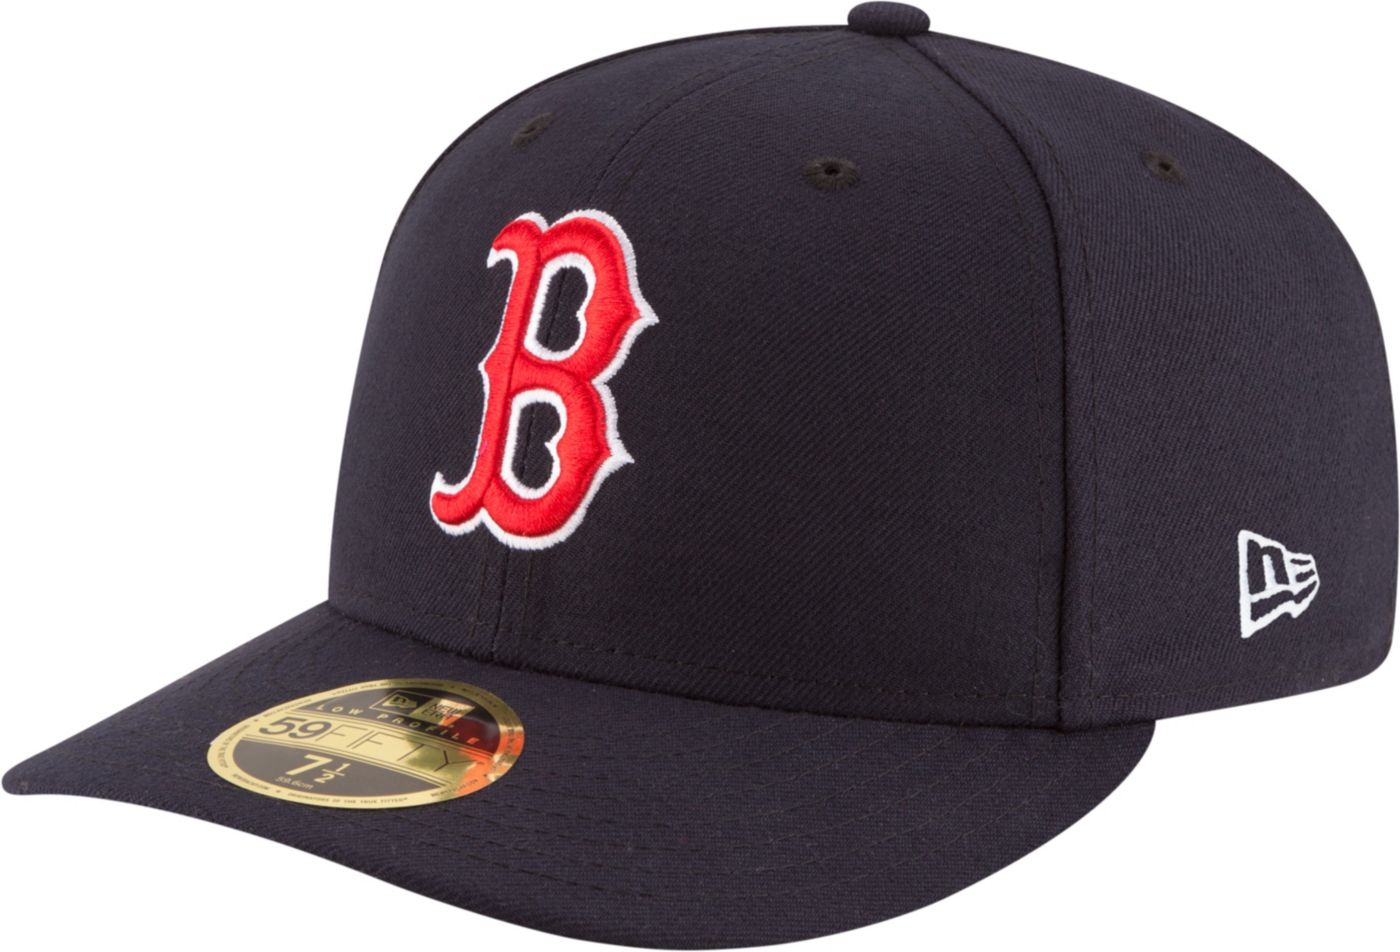 New Era Men's Boston Red Sox 59Fifty Game Navy Low Crown Authentic Hat